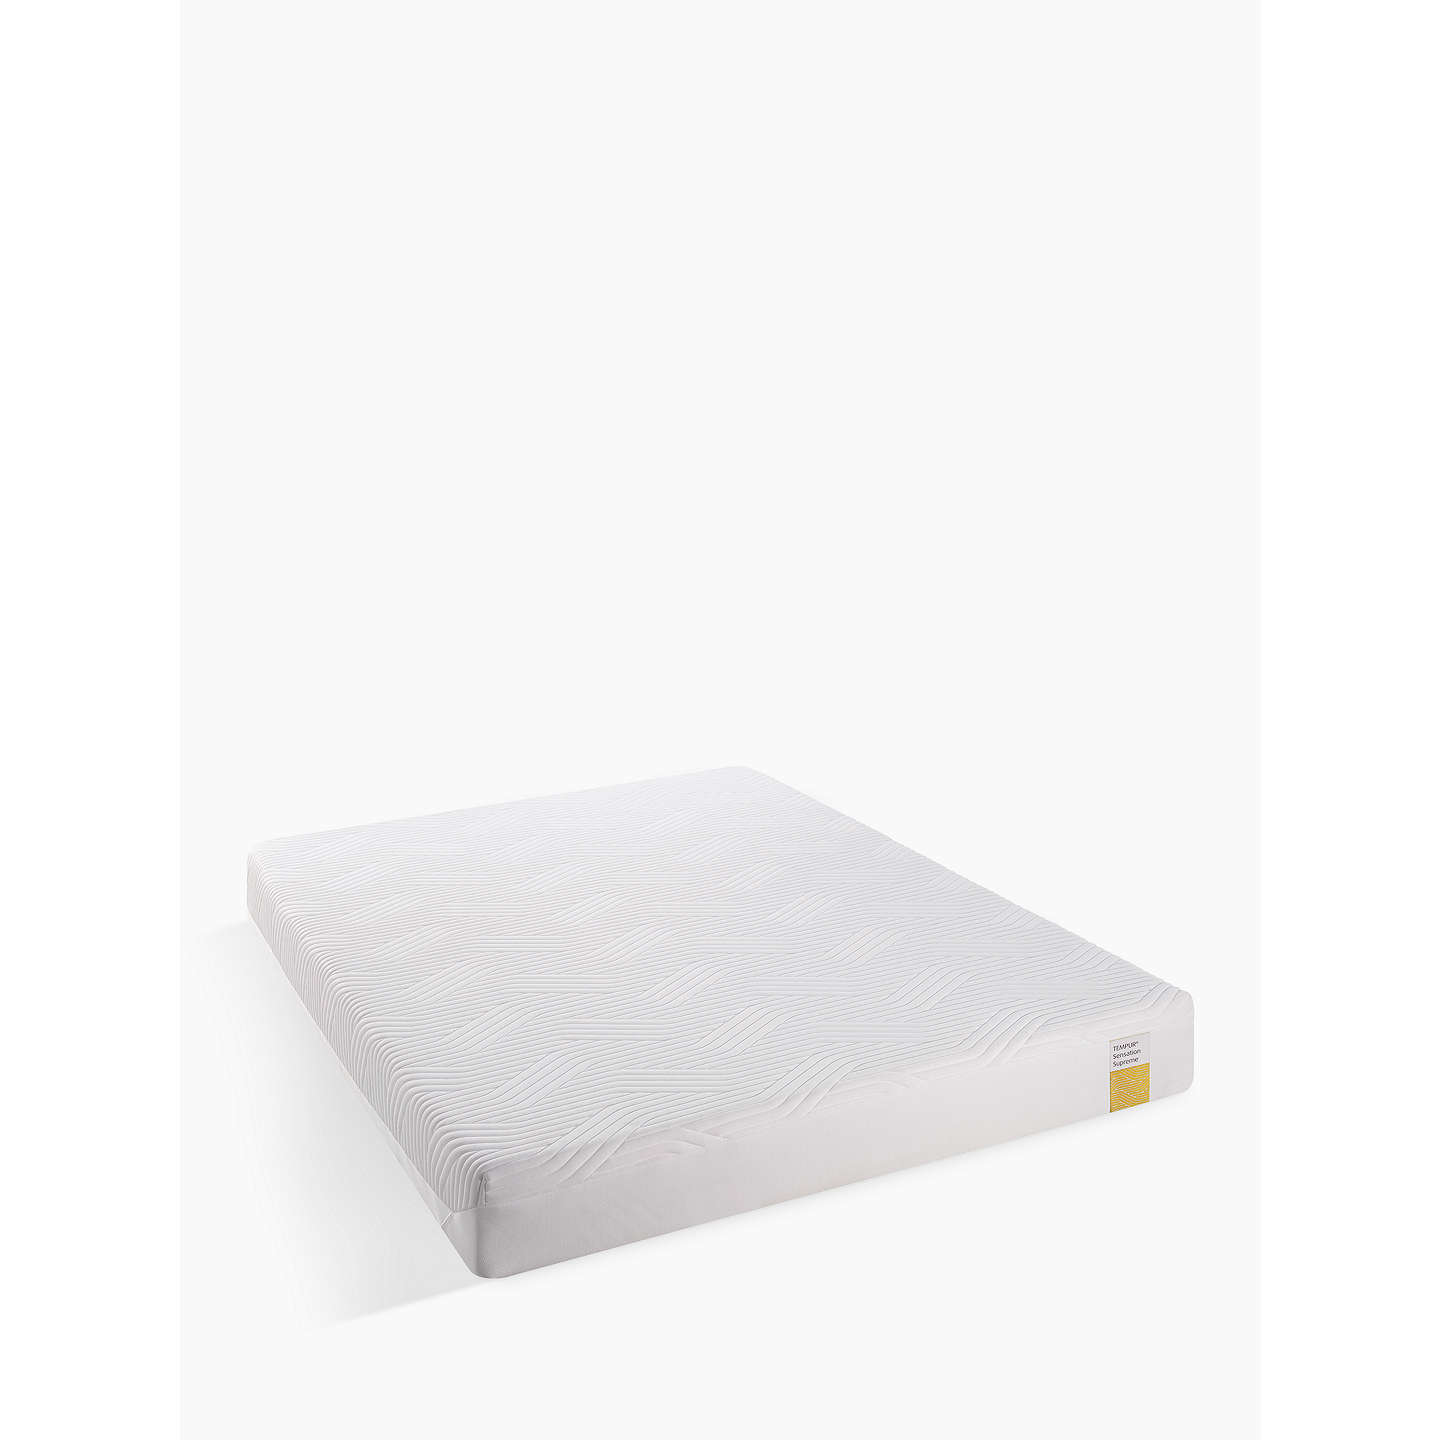 inch bed mattress king medium solutions soft comfort your thick memory slumber size gel foam firm products choose